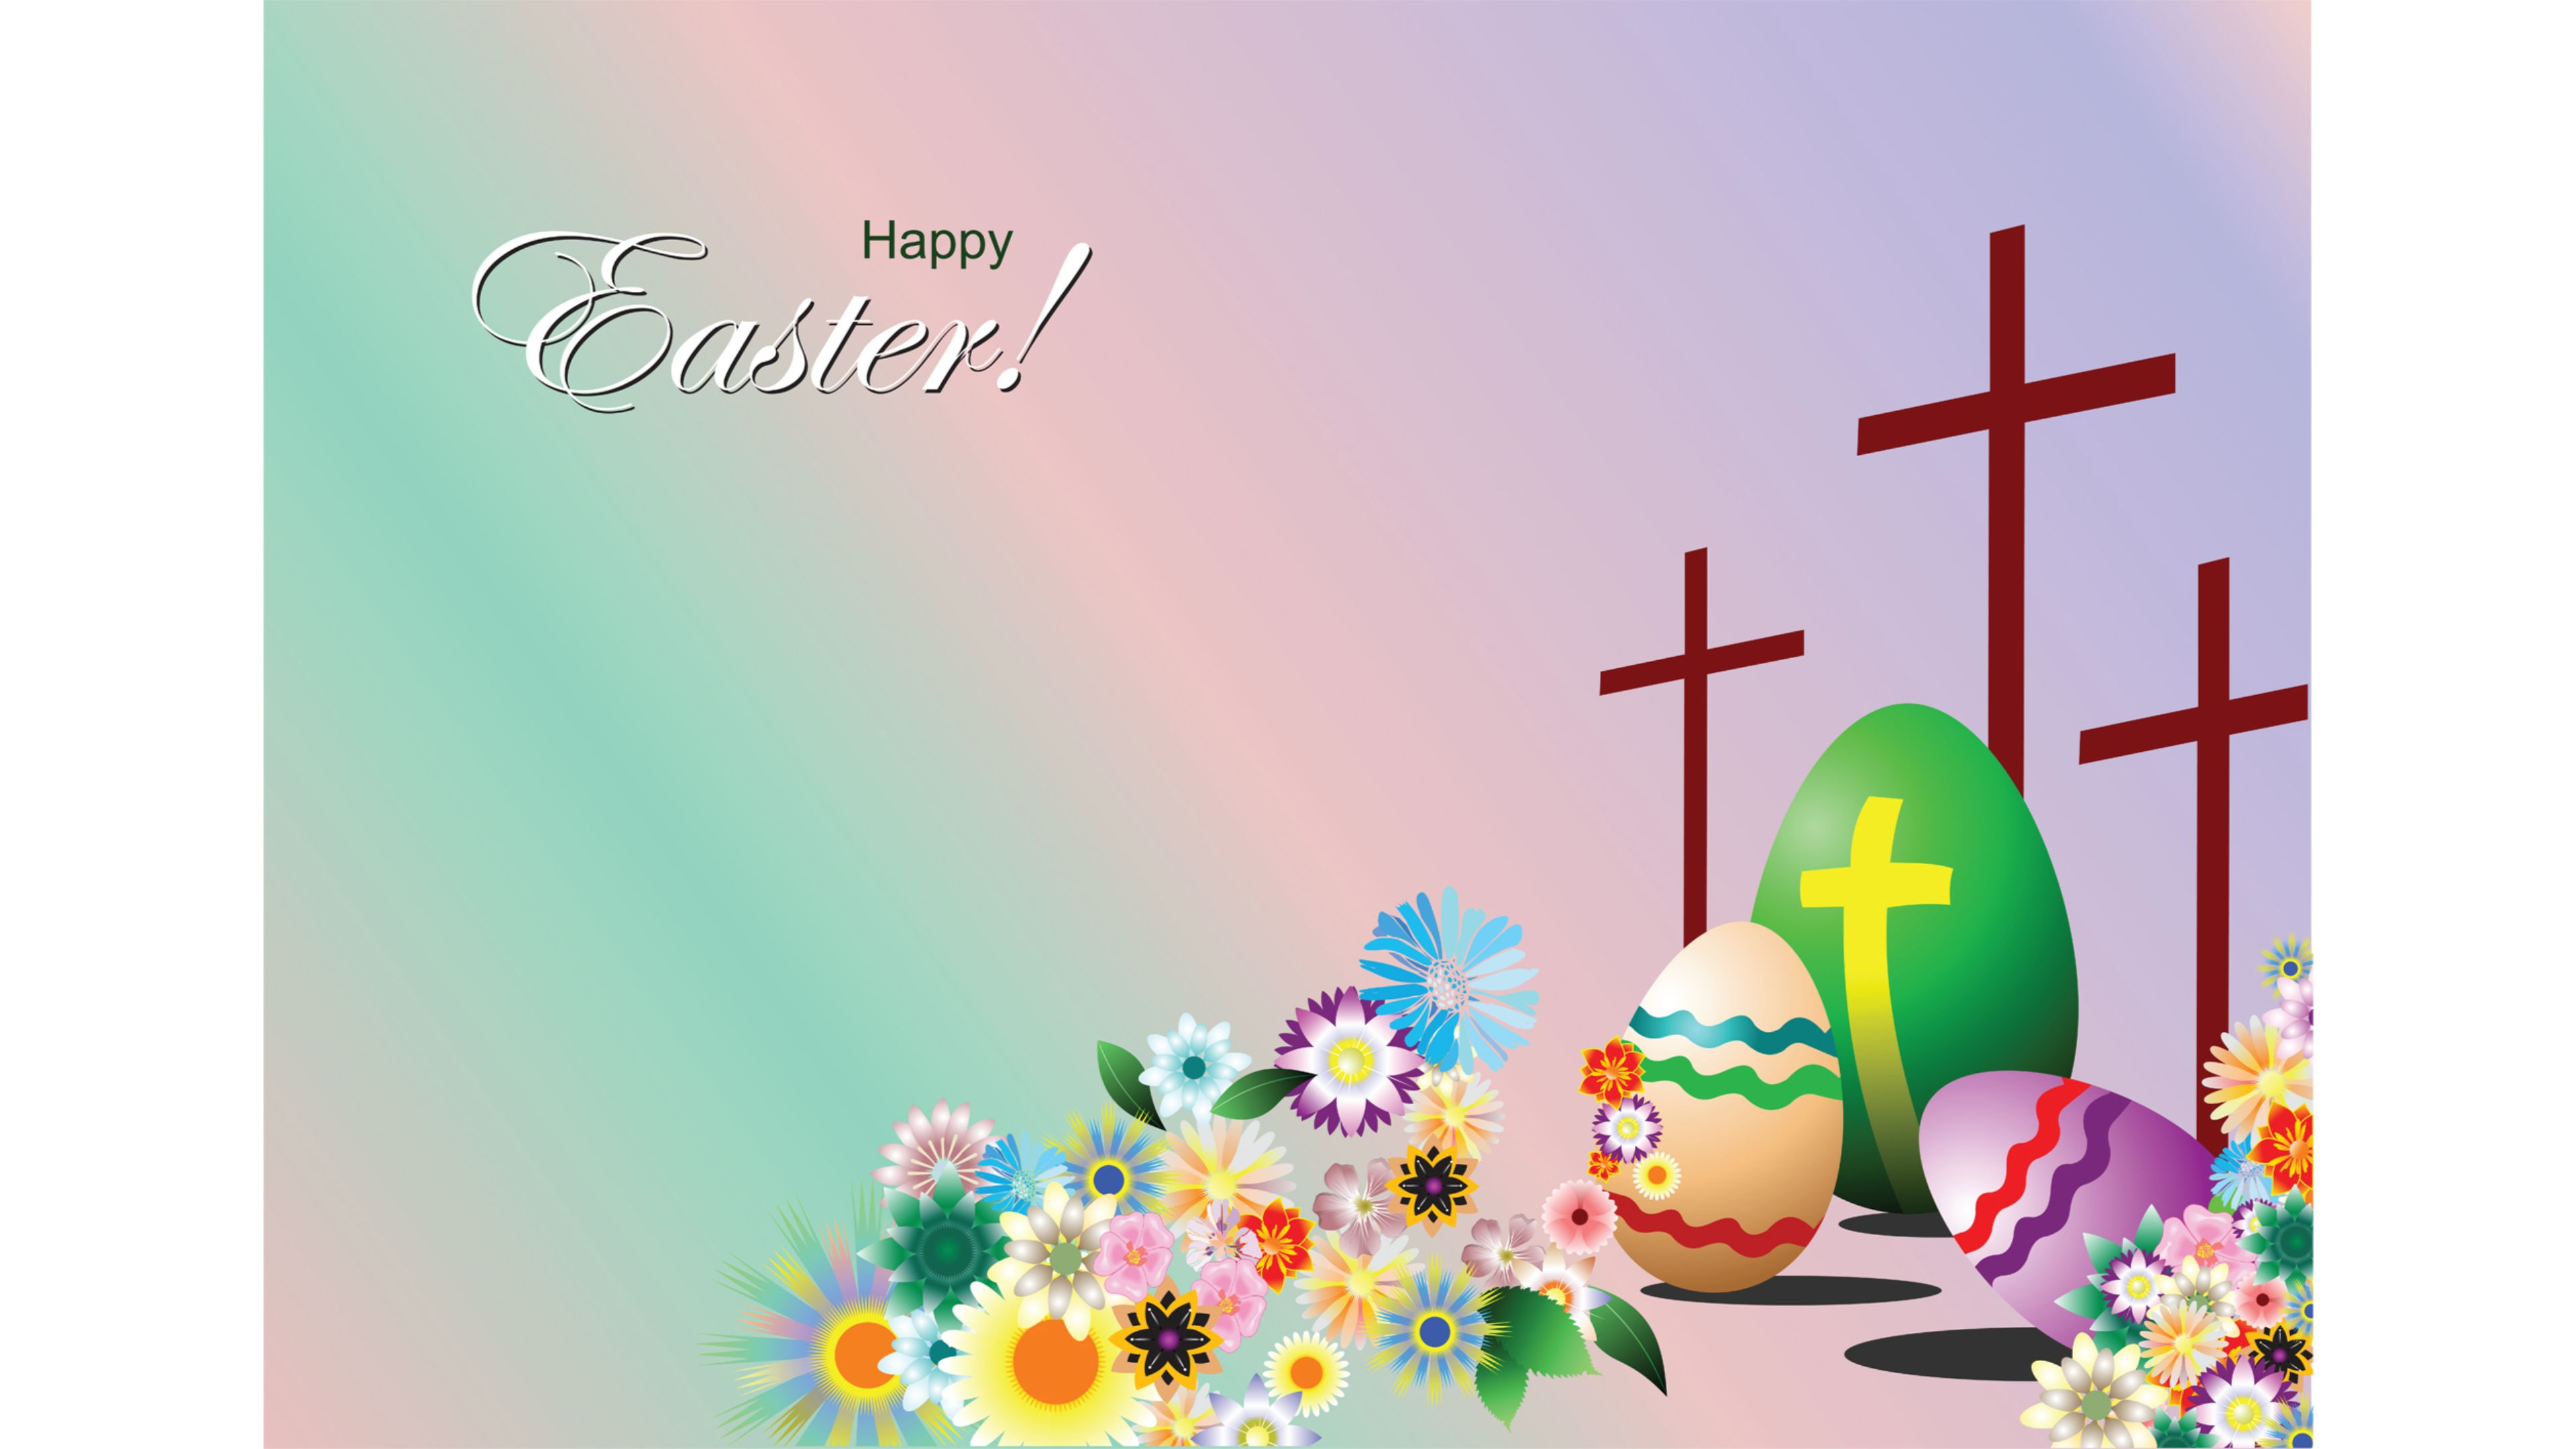 easter wallpaper backgrounds christian - photo #26